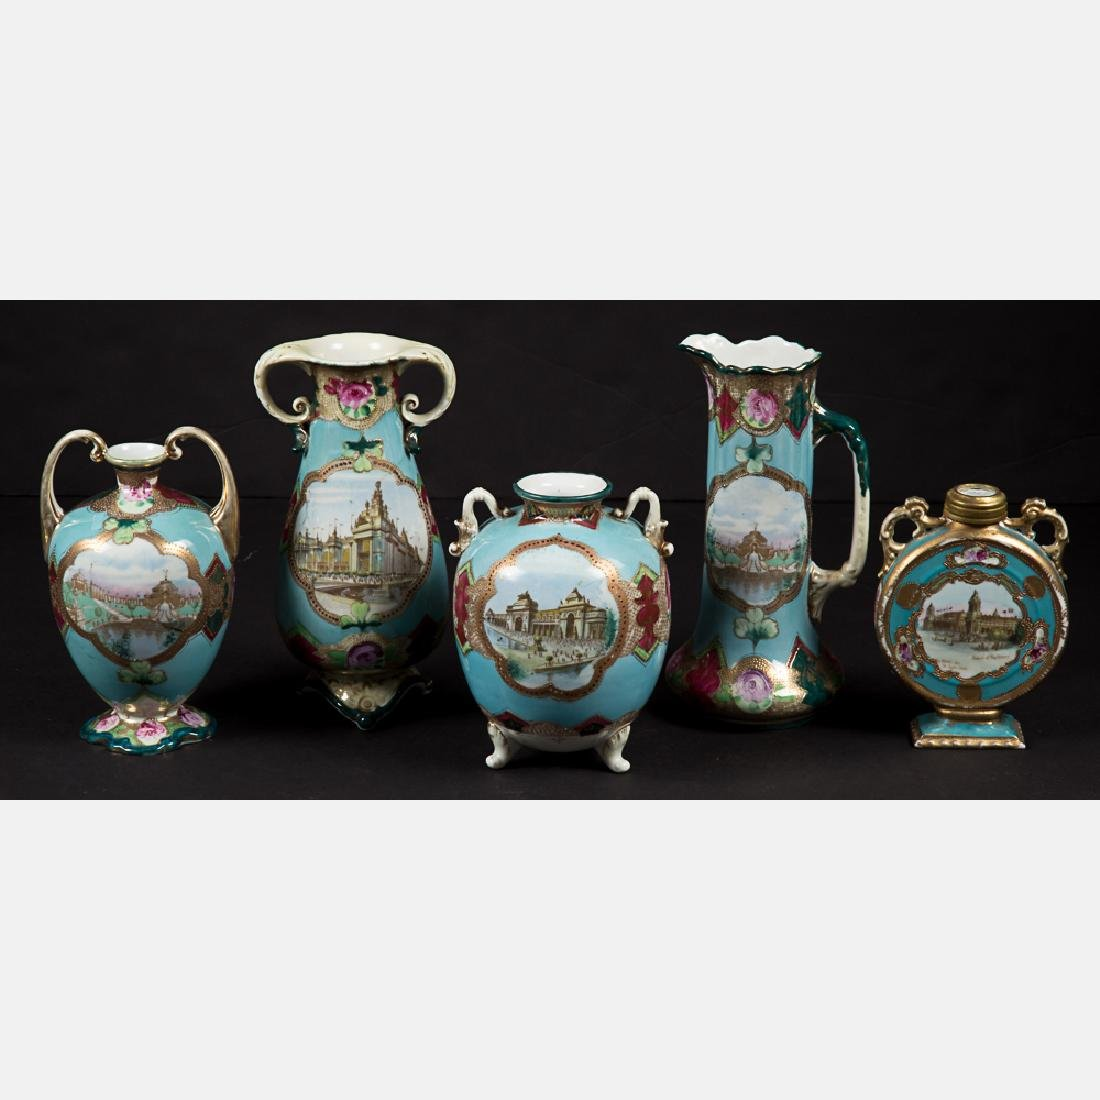 A Group of Five Porcelain Vases and Pitcher with Gilt